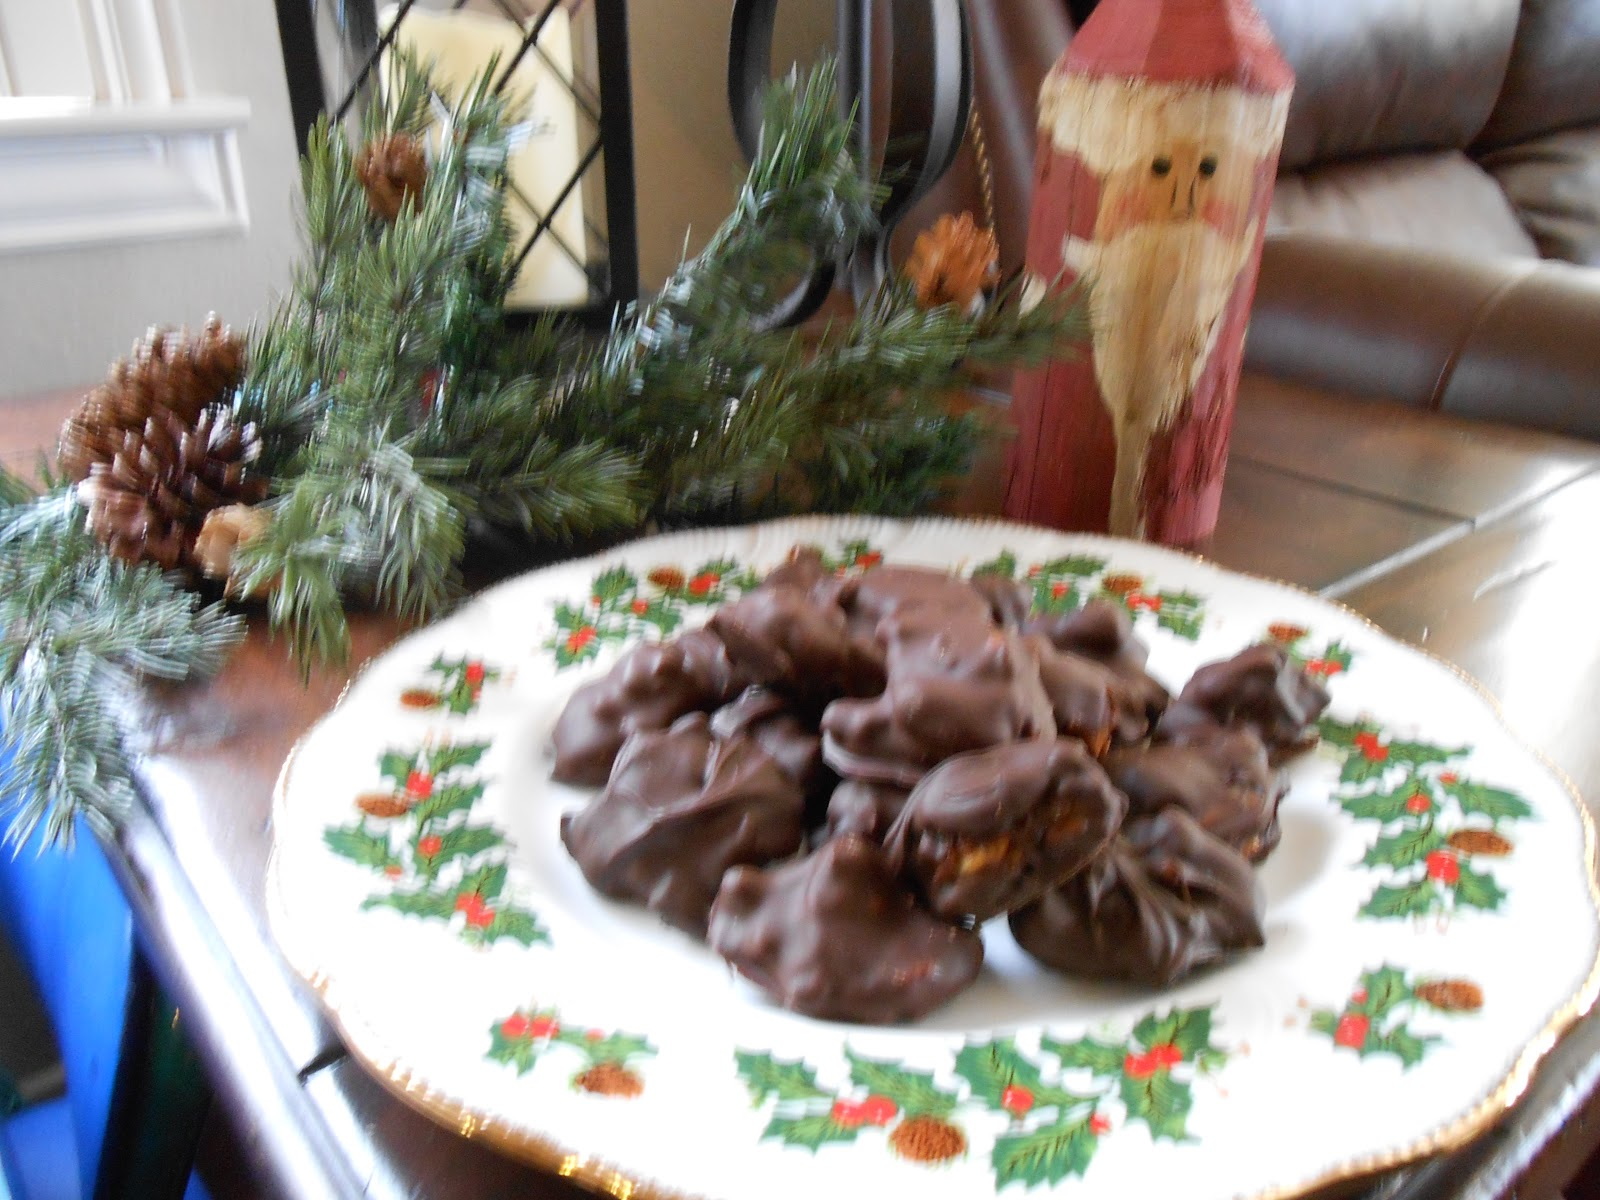 kitty s kozy kitchen  when i first started working at frito lay back in 1990 a dear lady shared this recipe me i enjoy making these yummy candies at christmas time